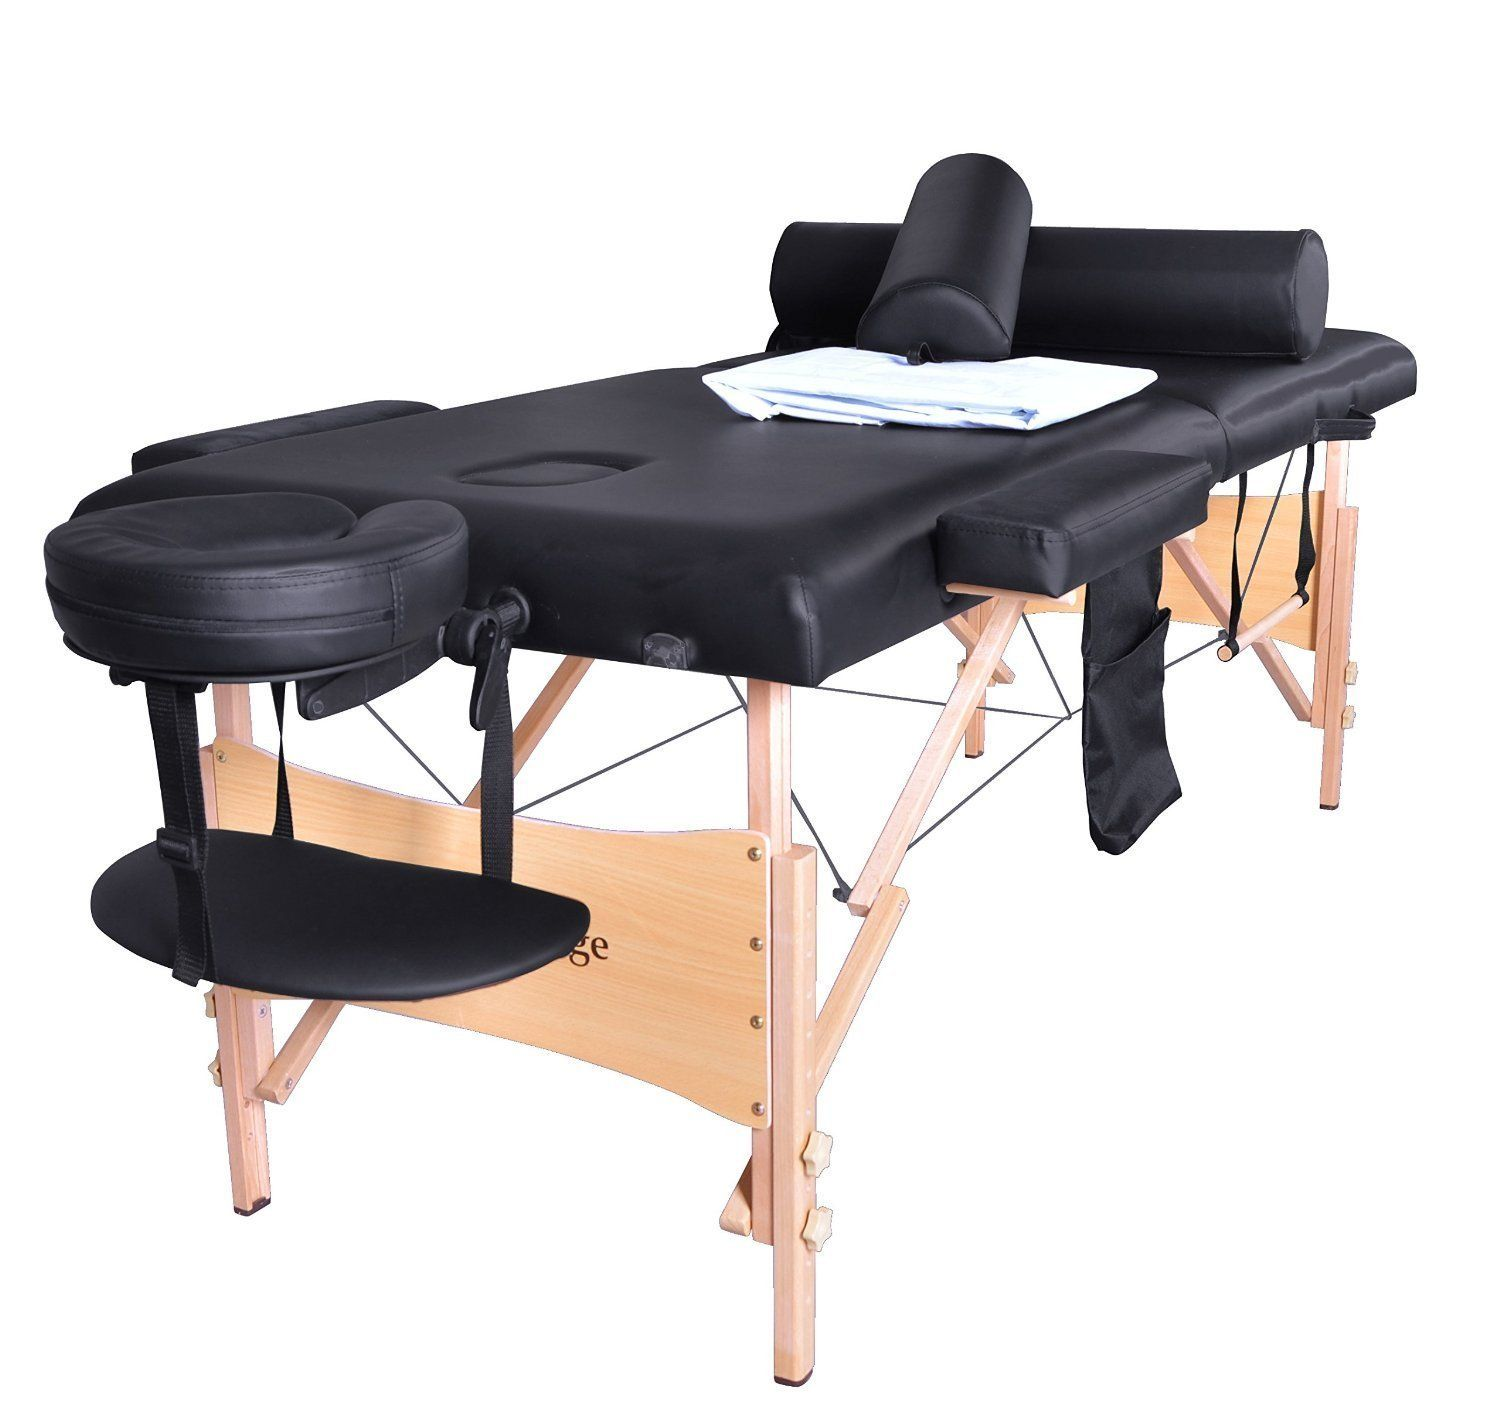 Massage Tables and Chairs New 73 3Fold Portable Aluminum Massage